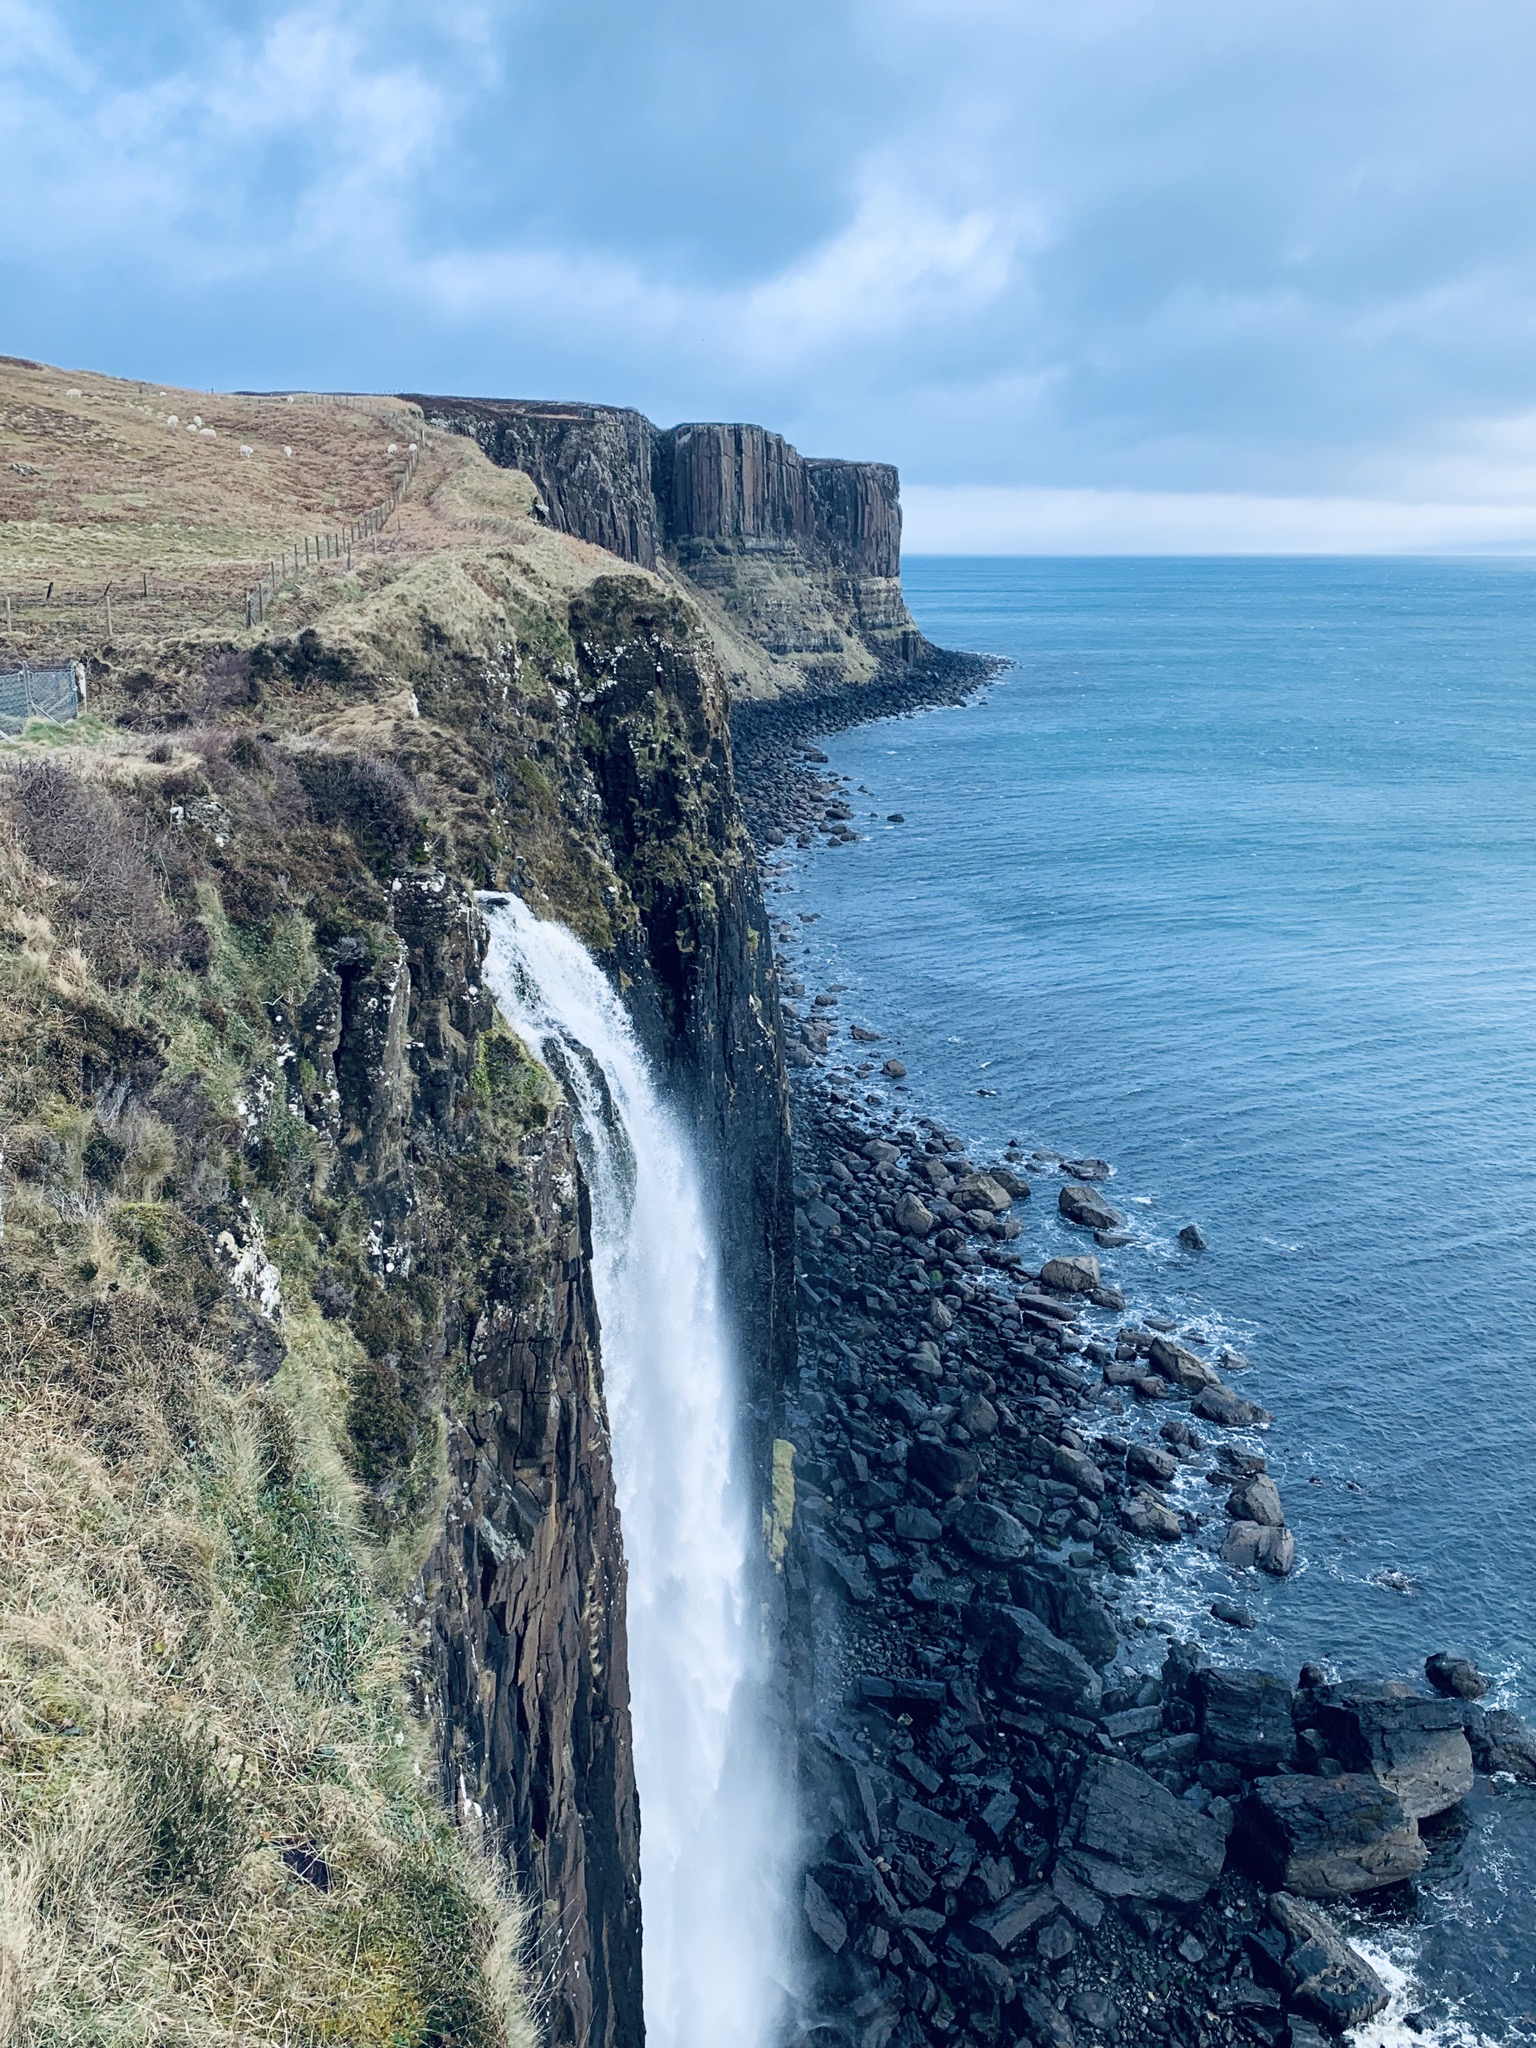 The cliff and the waterfall